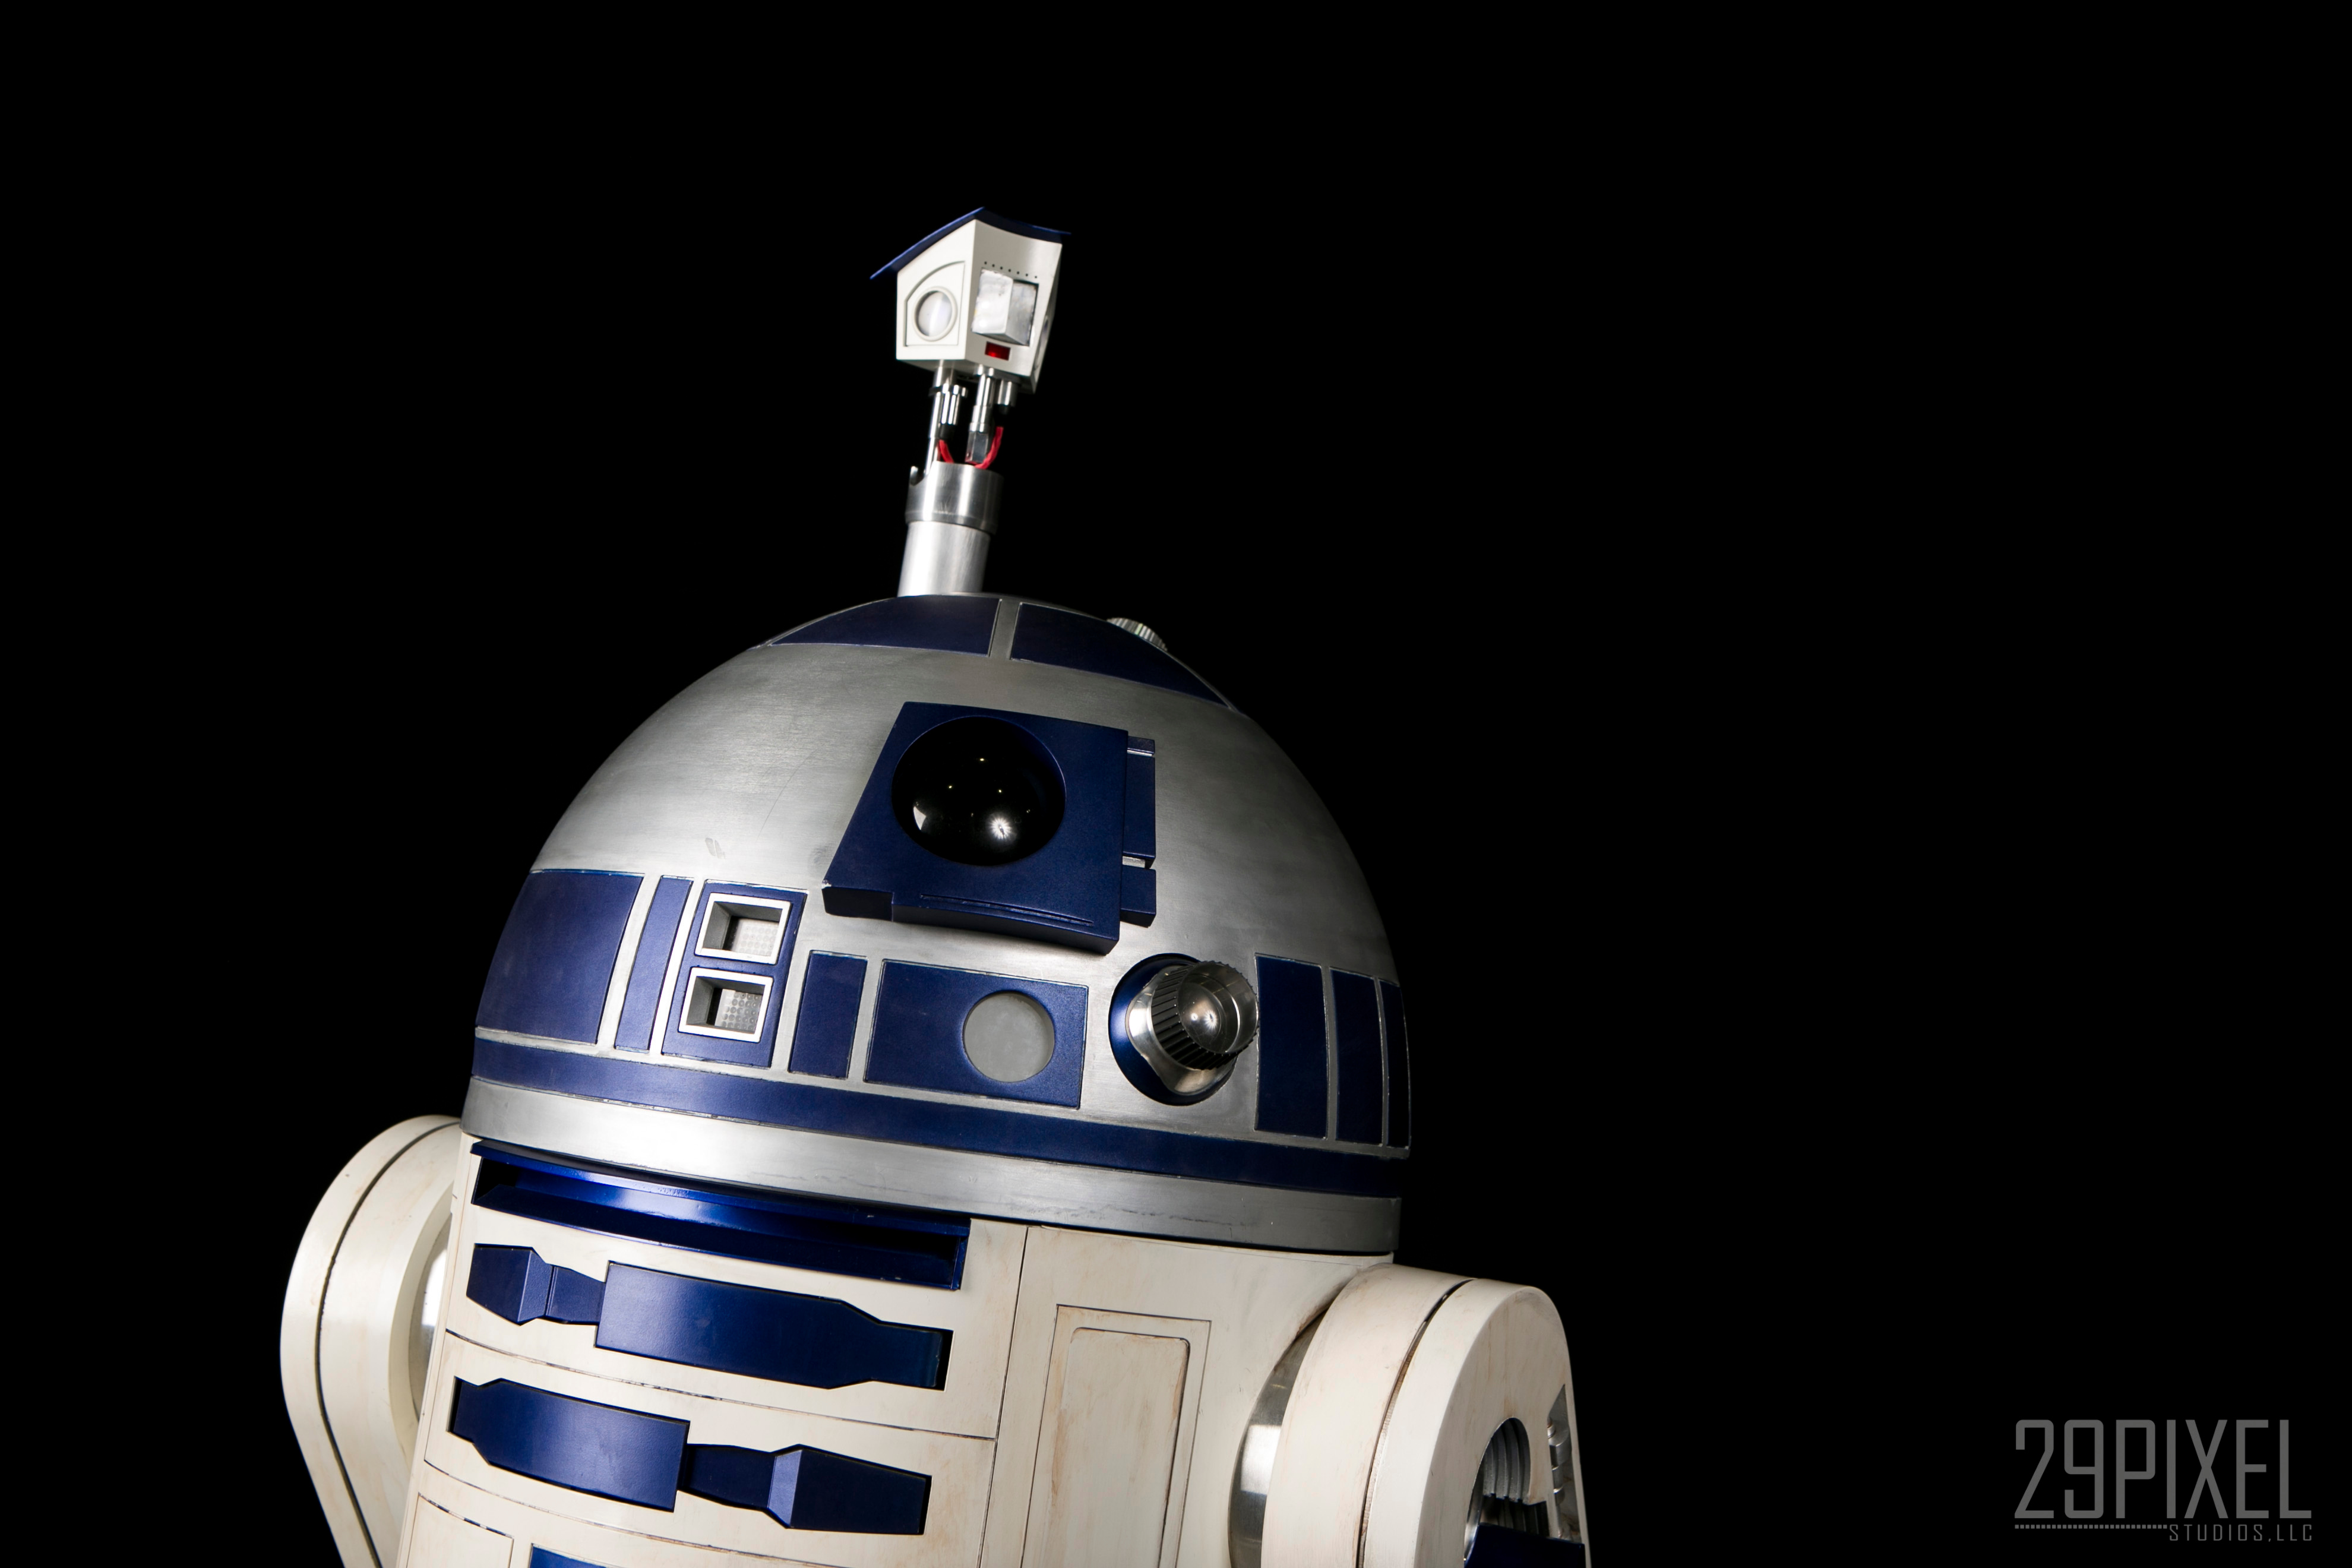 Mike's R2-D2 Dome